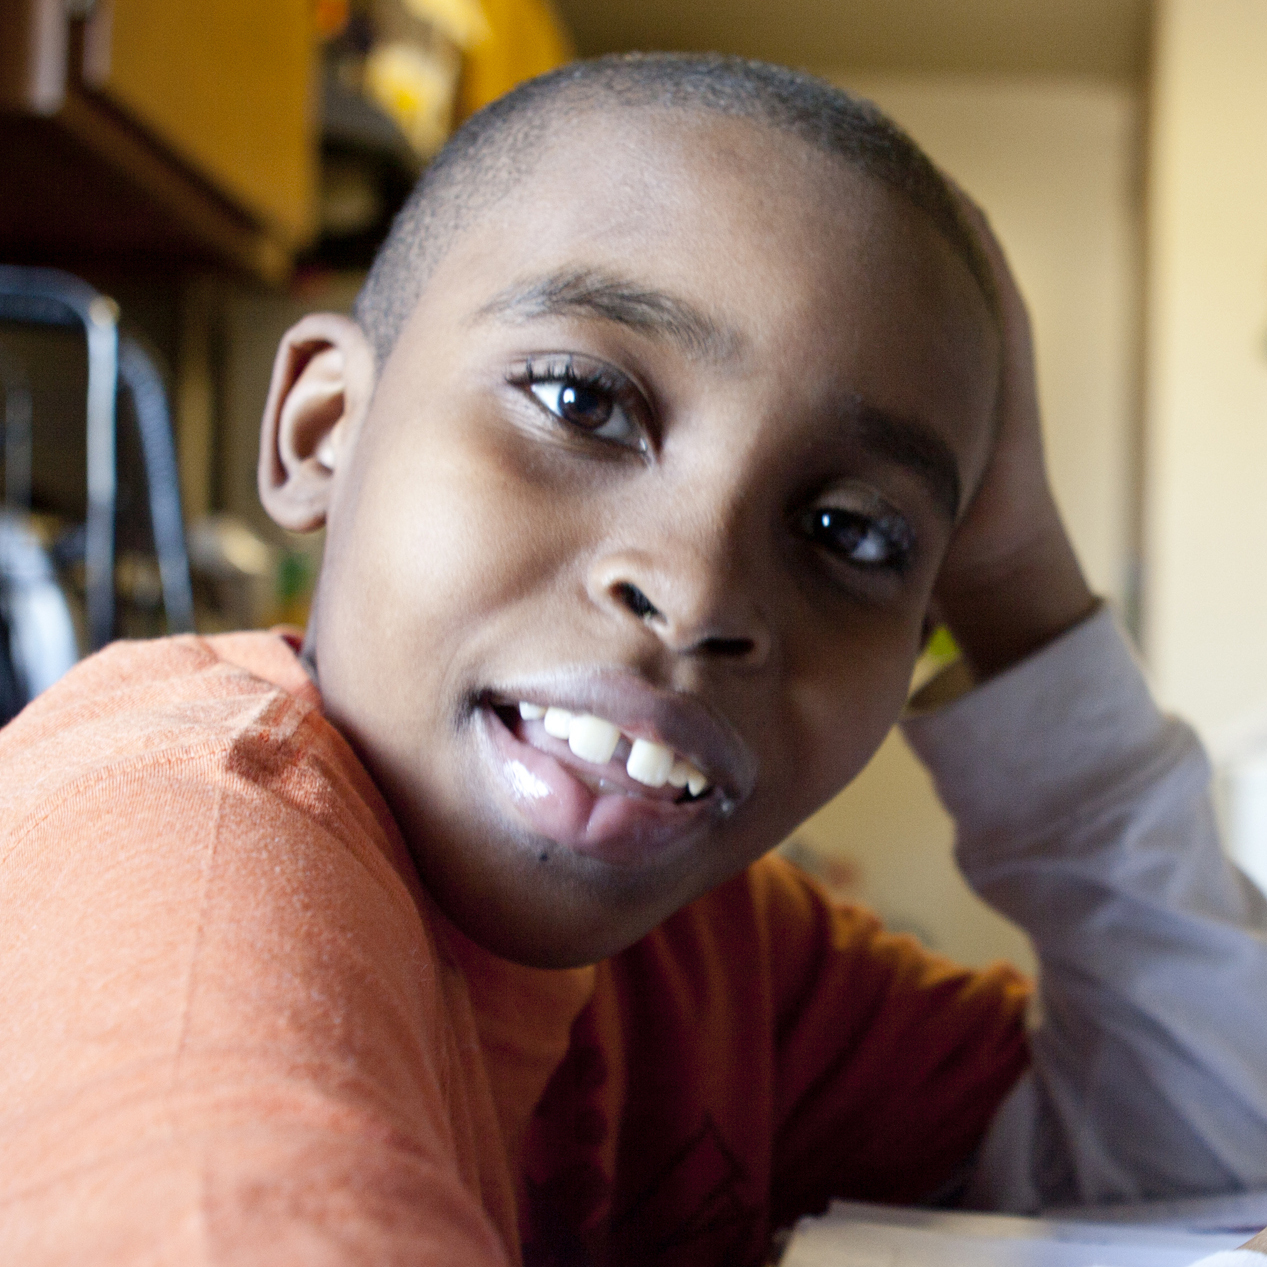 Jahleel Duroc, 10, does homework after school at his home in the Bronx, New York City. Jahleel receives disability benefits for asthma.